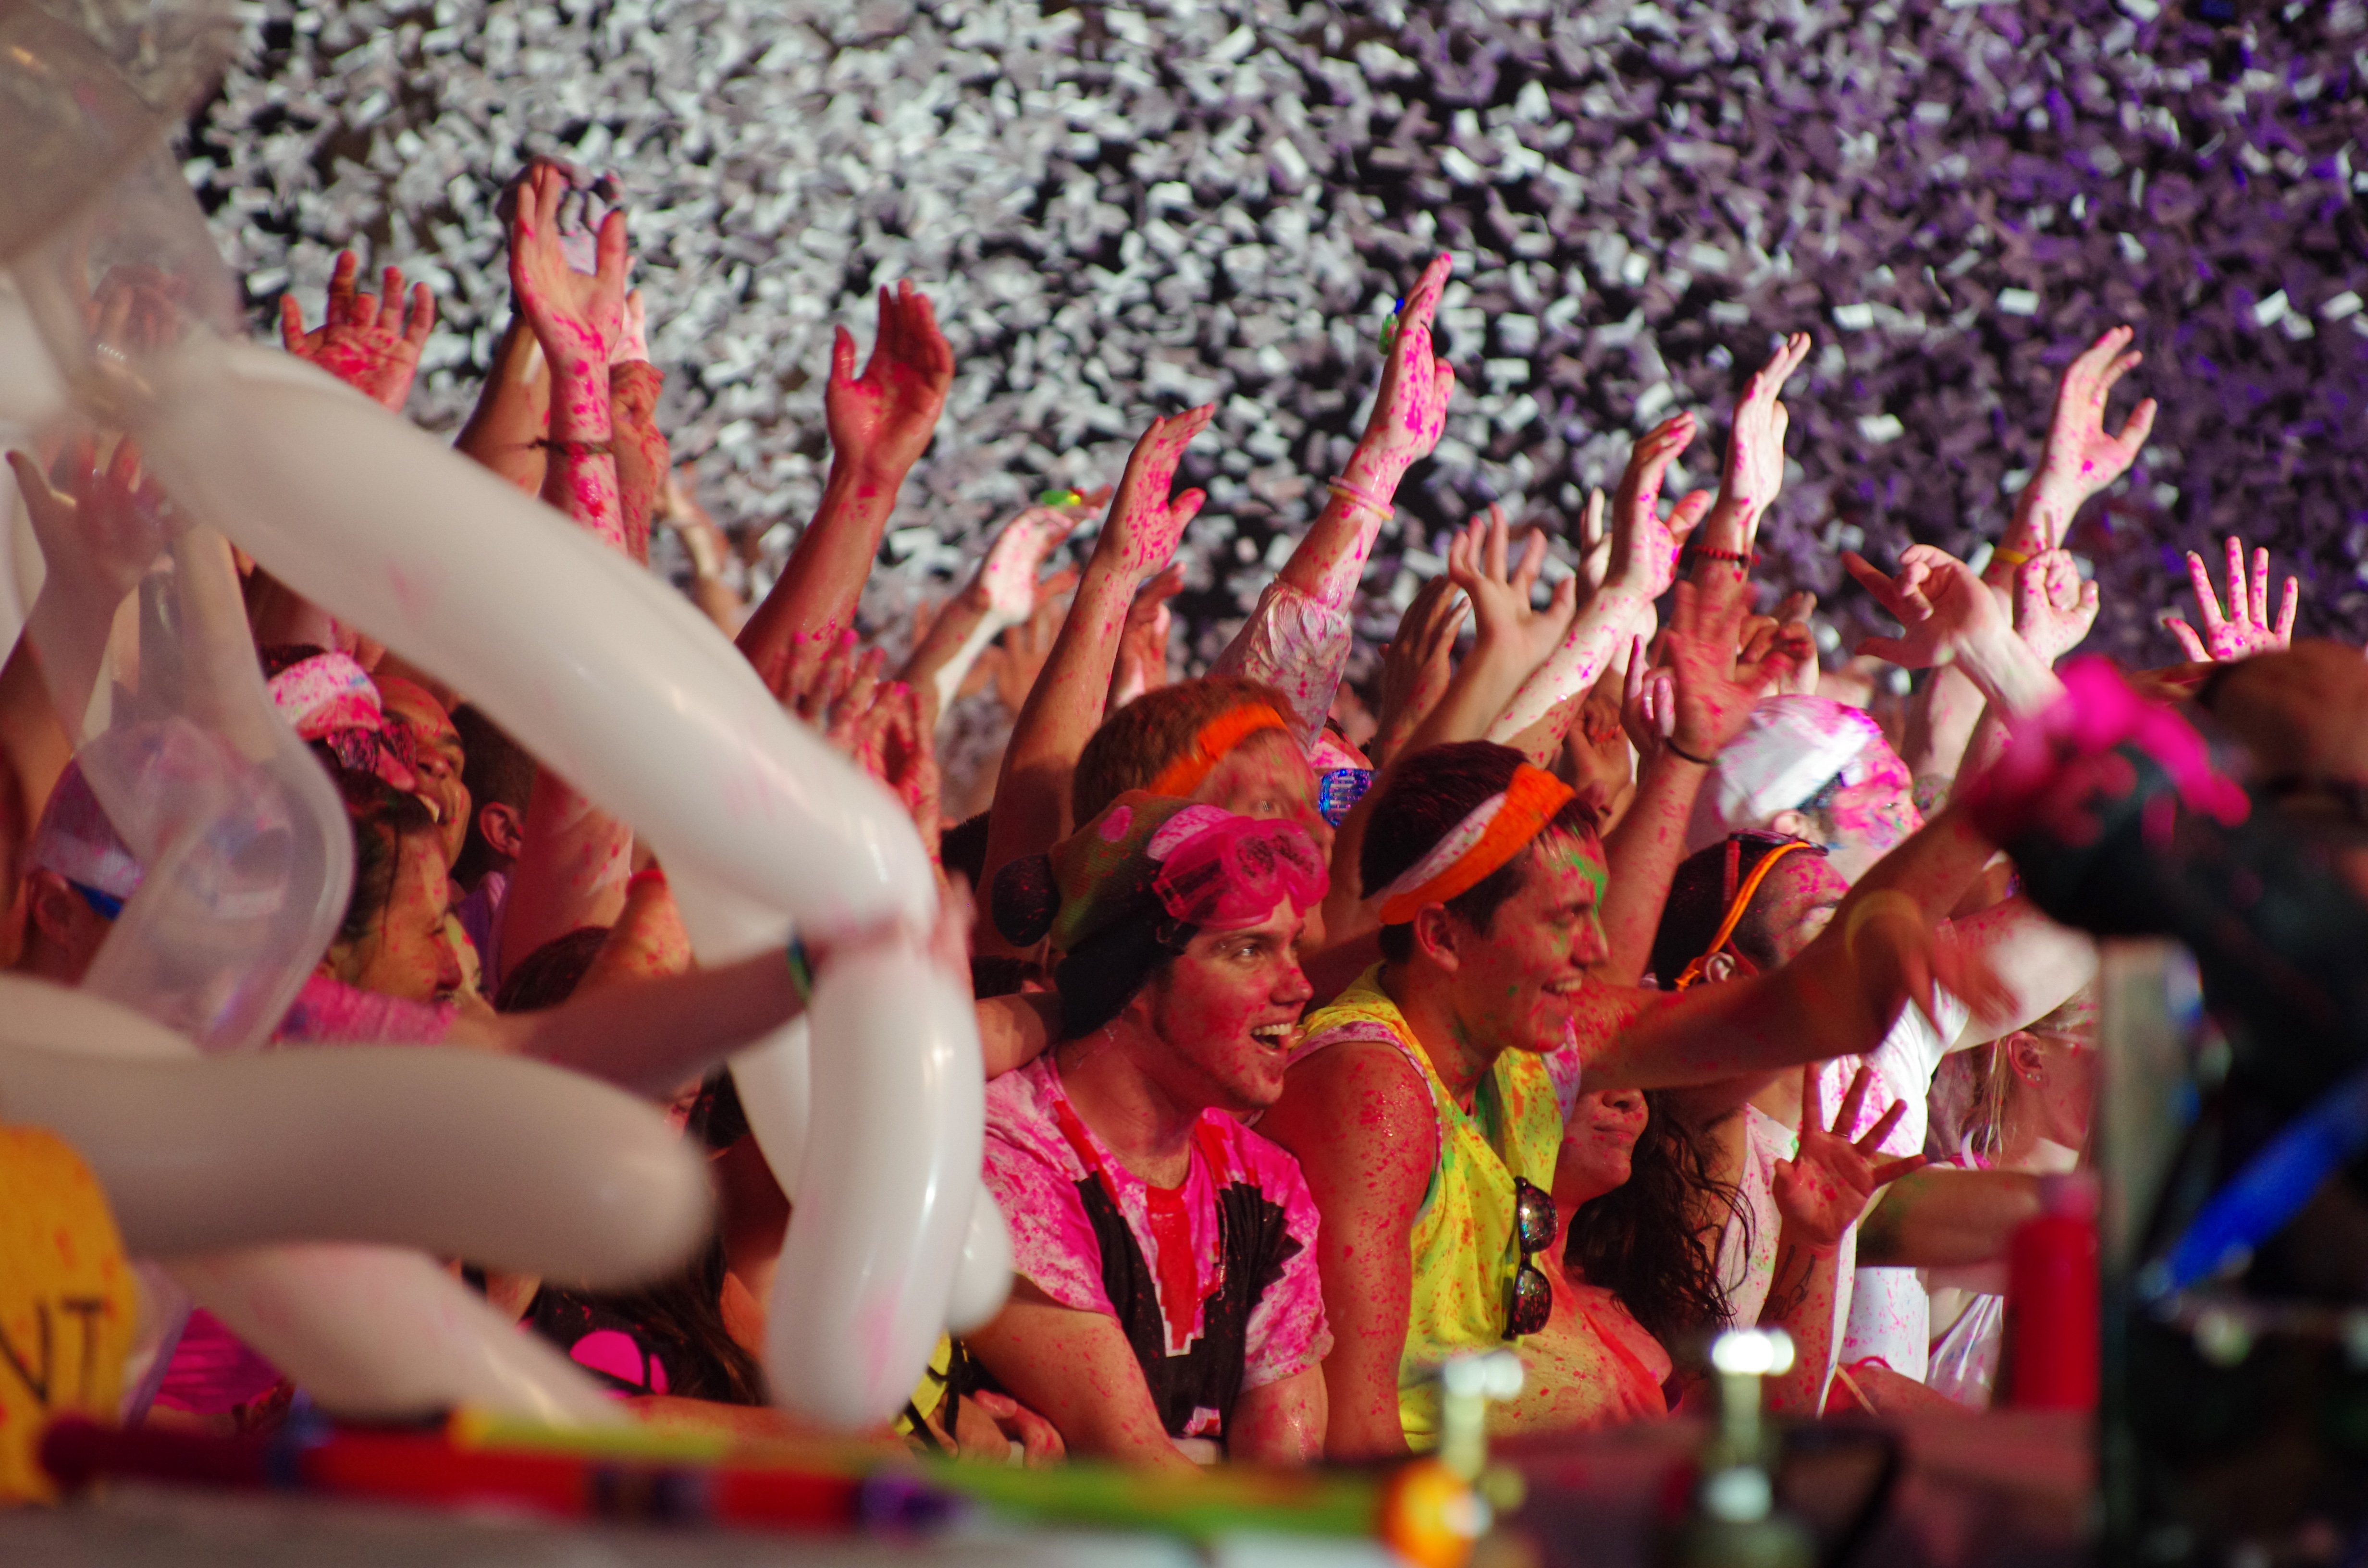 Students packed the Field House on Wednesday night for Dayglow, a electronic music show that bills itself as the world's largest paint party.